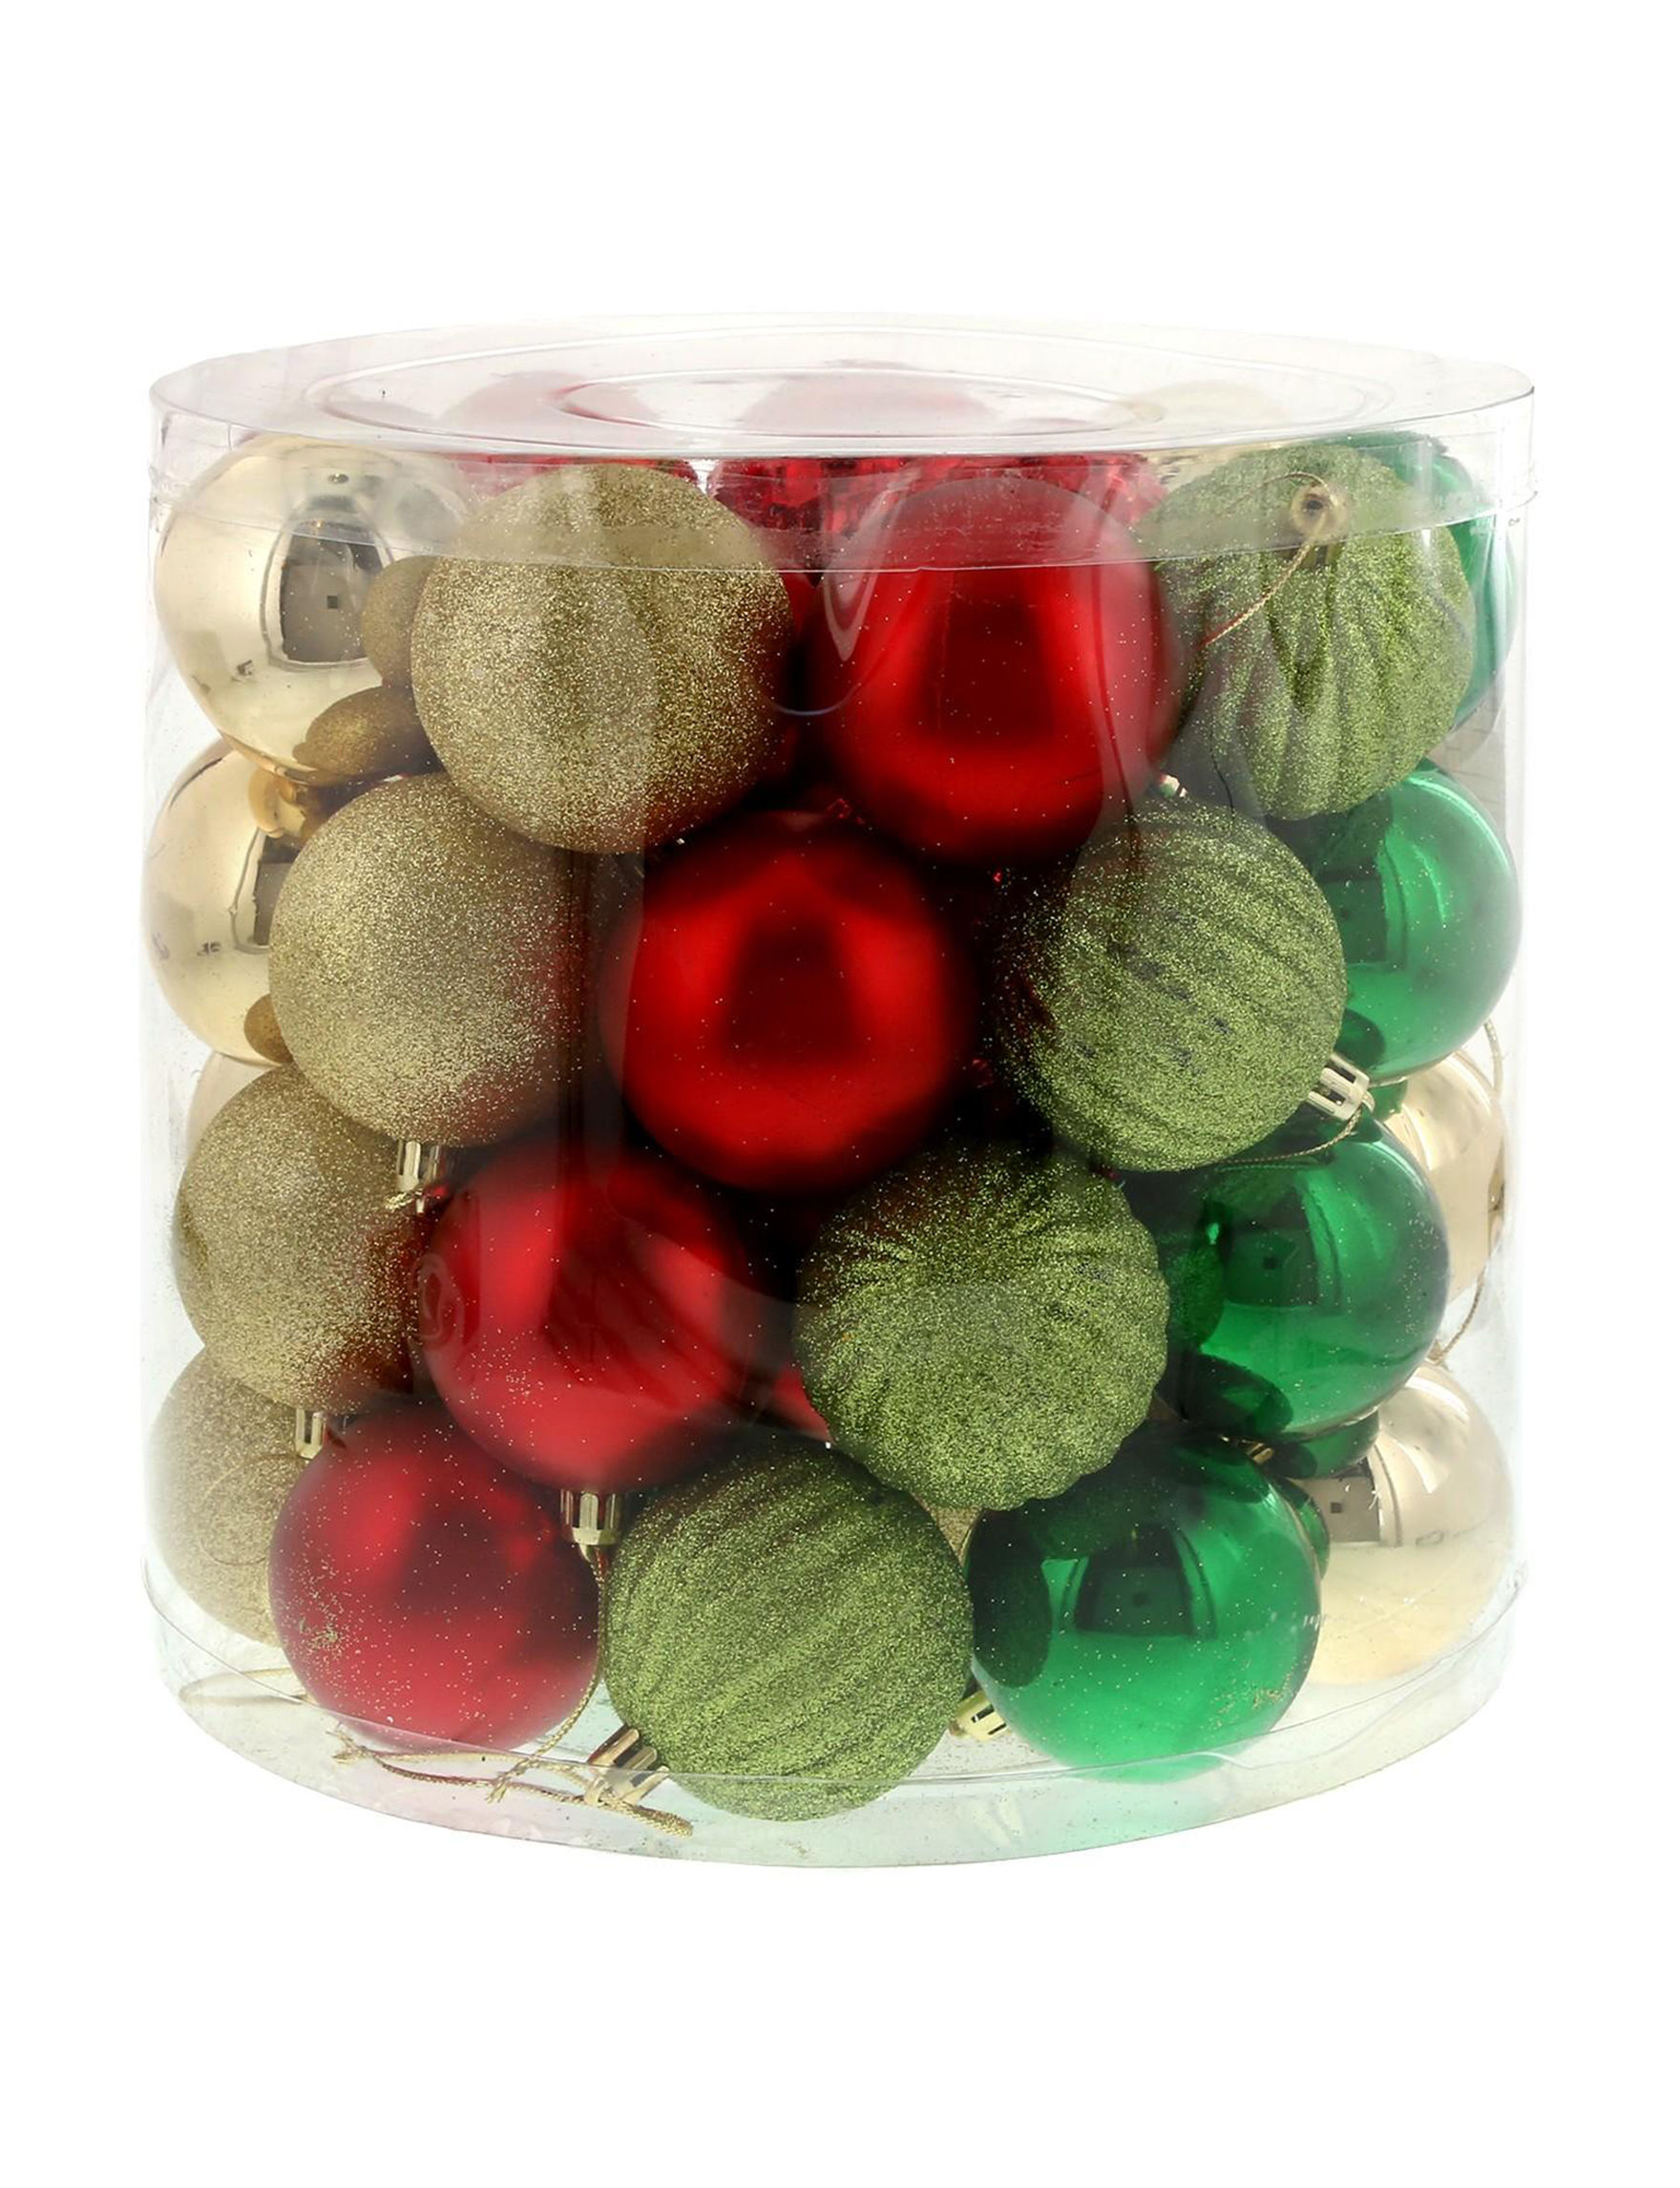 BuySeasons Green / Red Decorative Objects Ornaments Holiday Decor